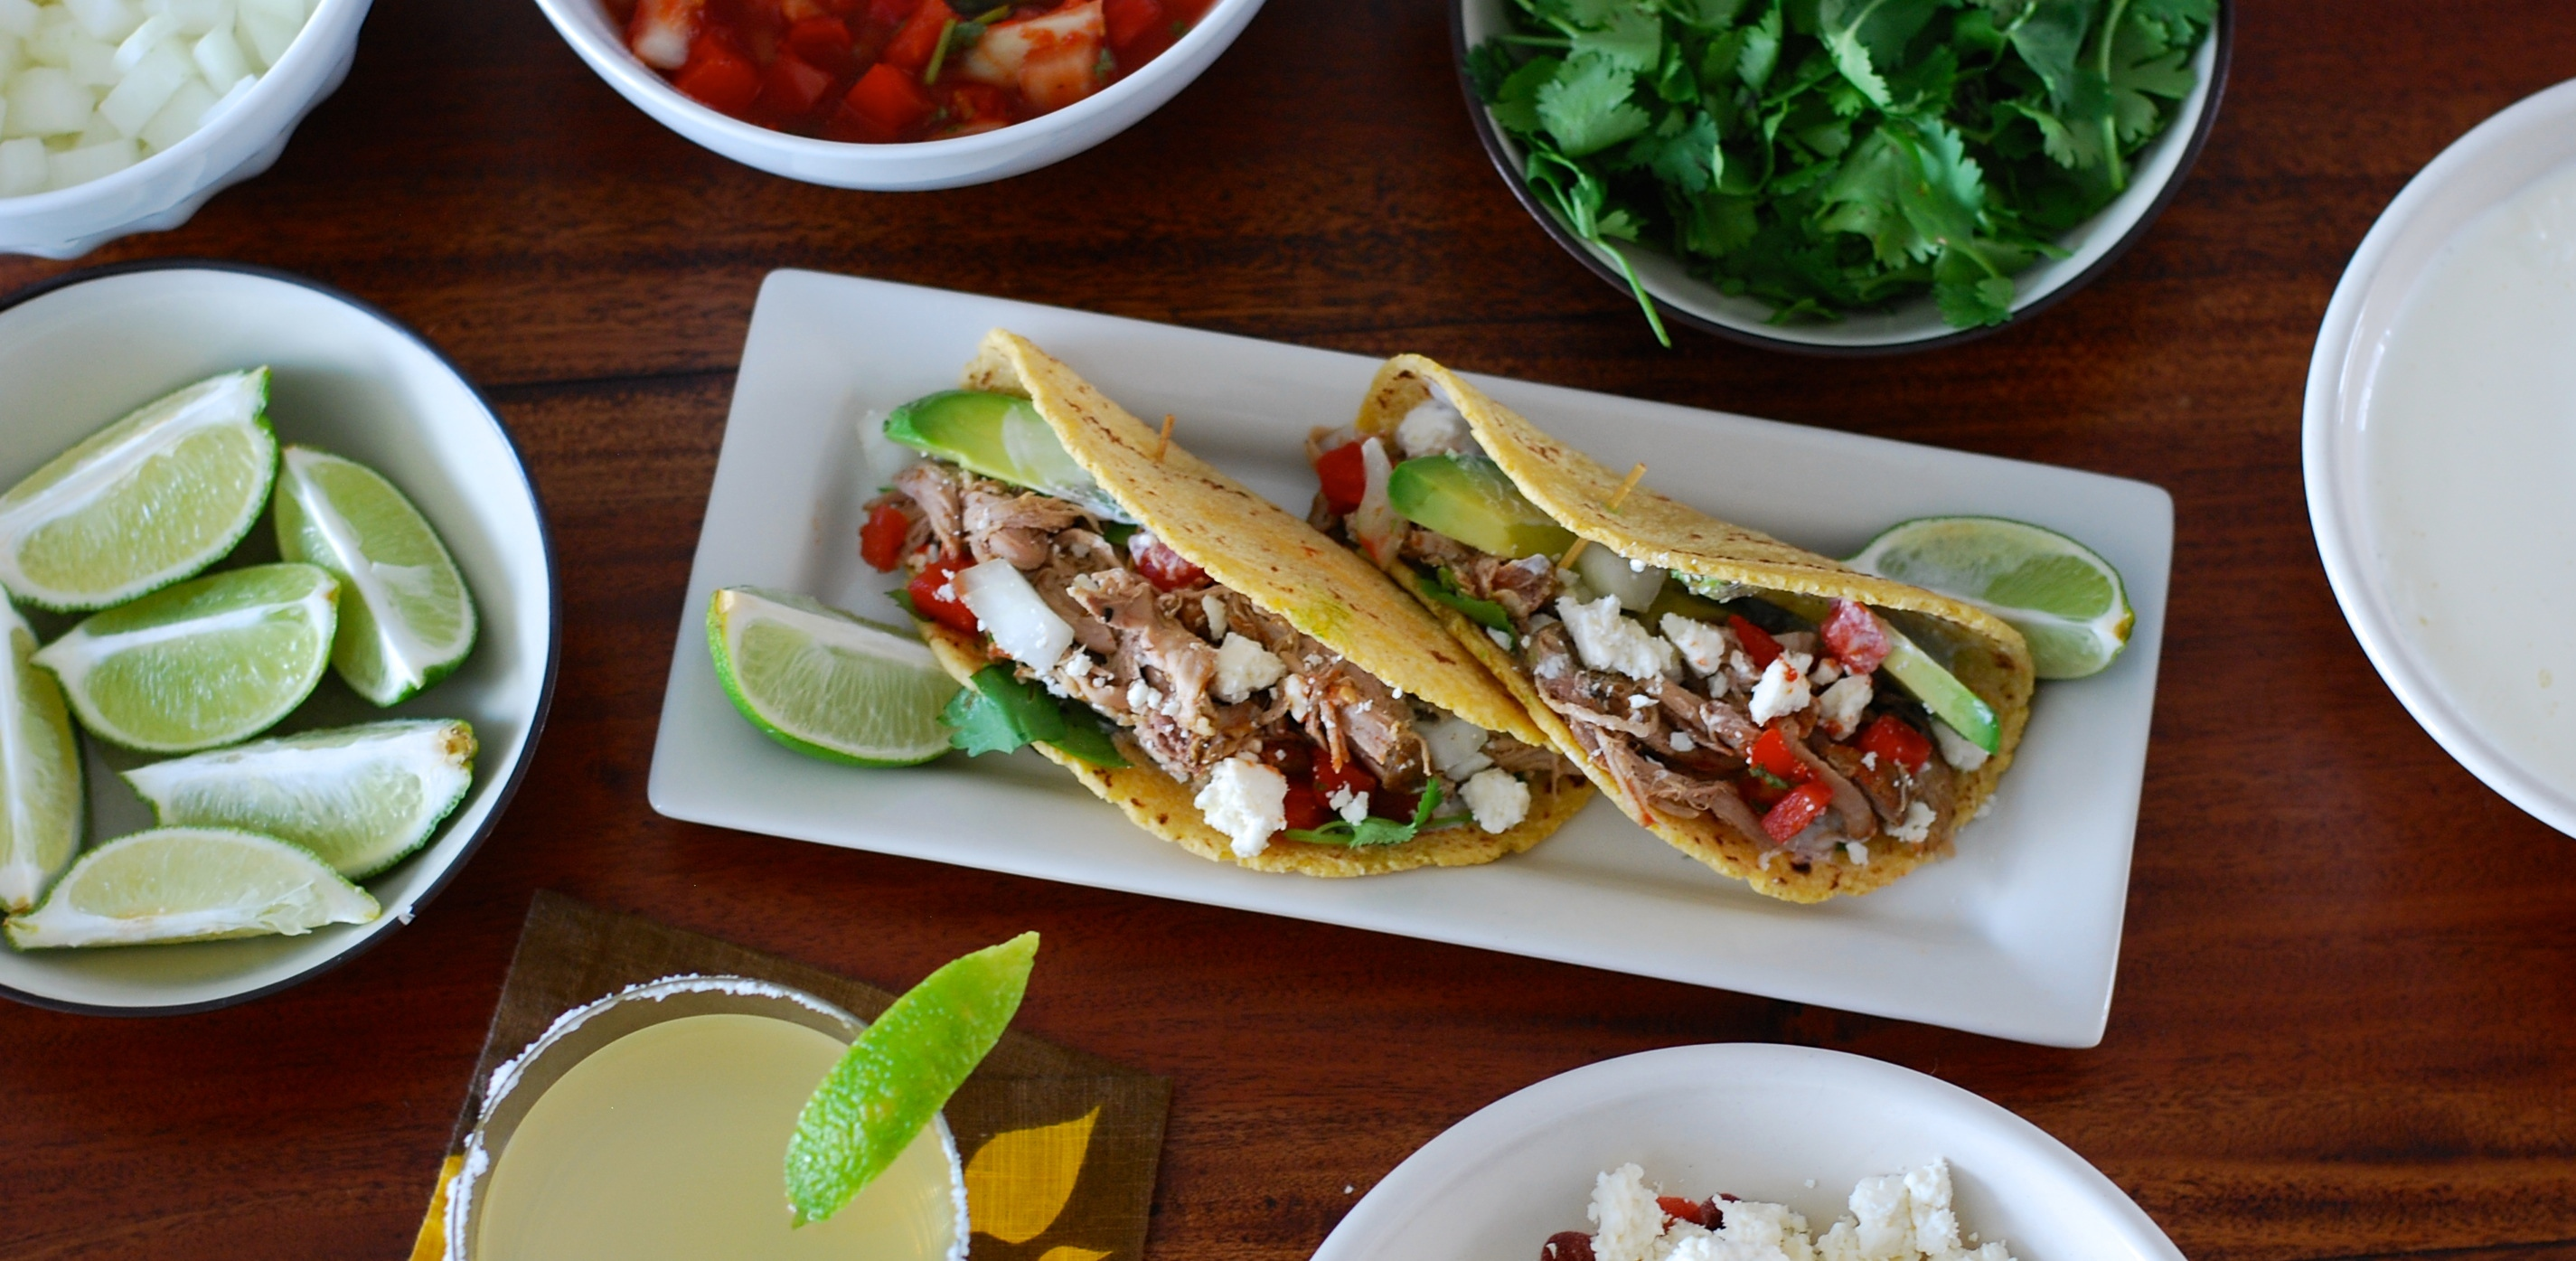 Make This Weekend: Slow Cooker Pulled Pork Tacos